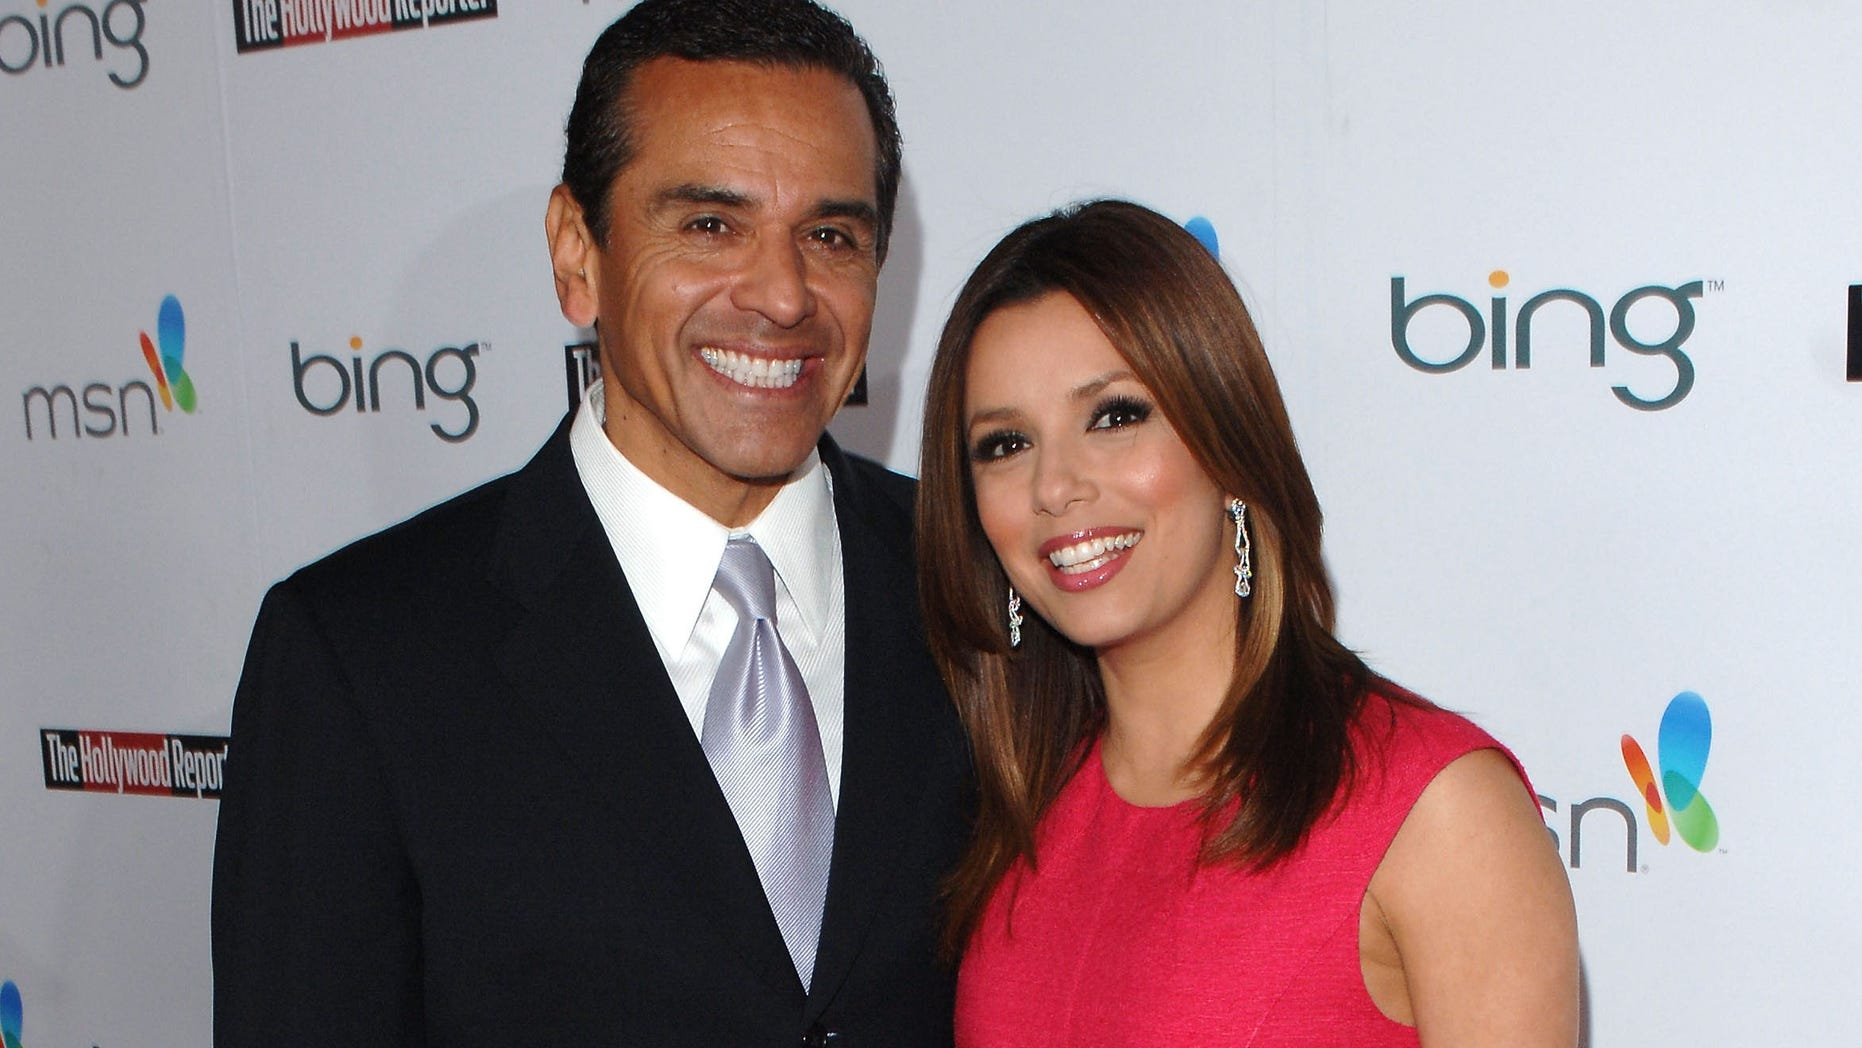 LOS ANGELES, CA - MARCH 04:  Mayor Antonio Villaraigosa (L) and actress Eva Longoria Parker attend The Hollywood Reporter's Nominees' Night Prelude to Oscar presented by Bing and MSN at the Mayor's Residence on Thursday, March 4, 2010 in Los Angeles, California.  (Photo by Craig Barritt/Getty Images)